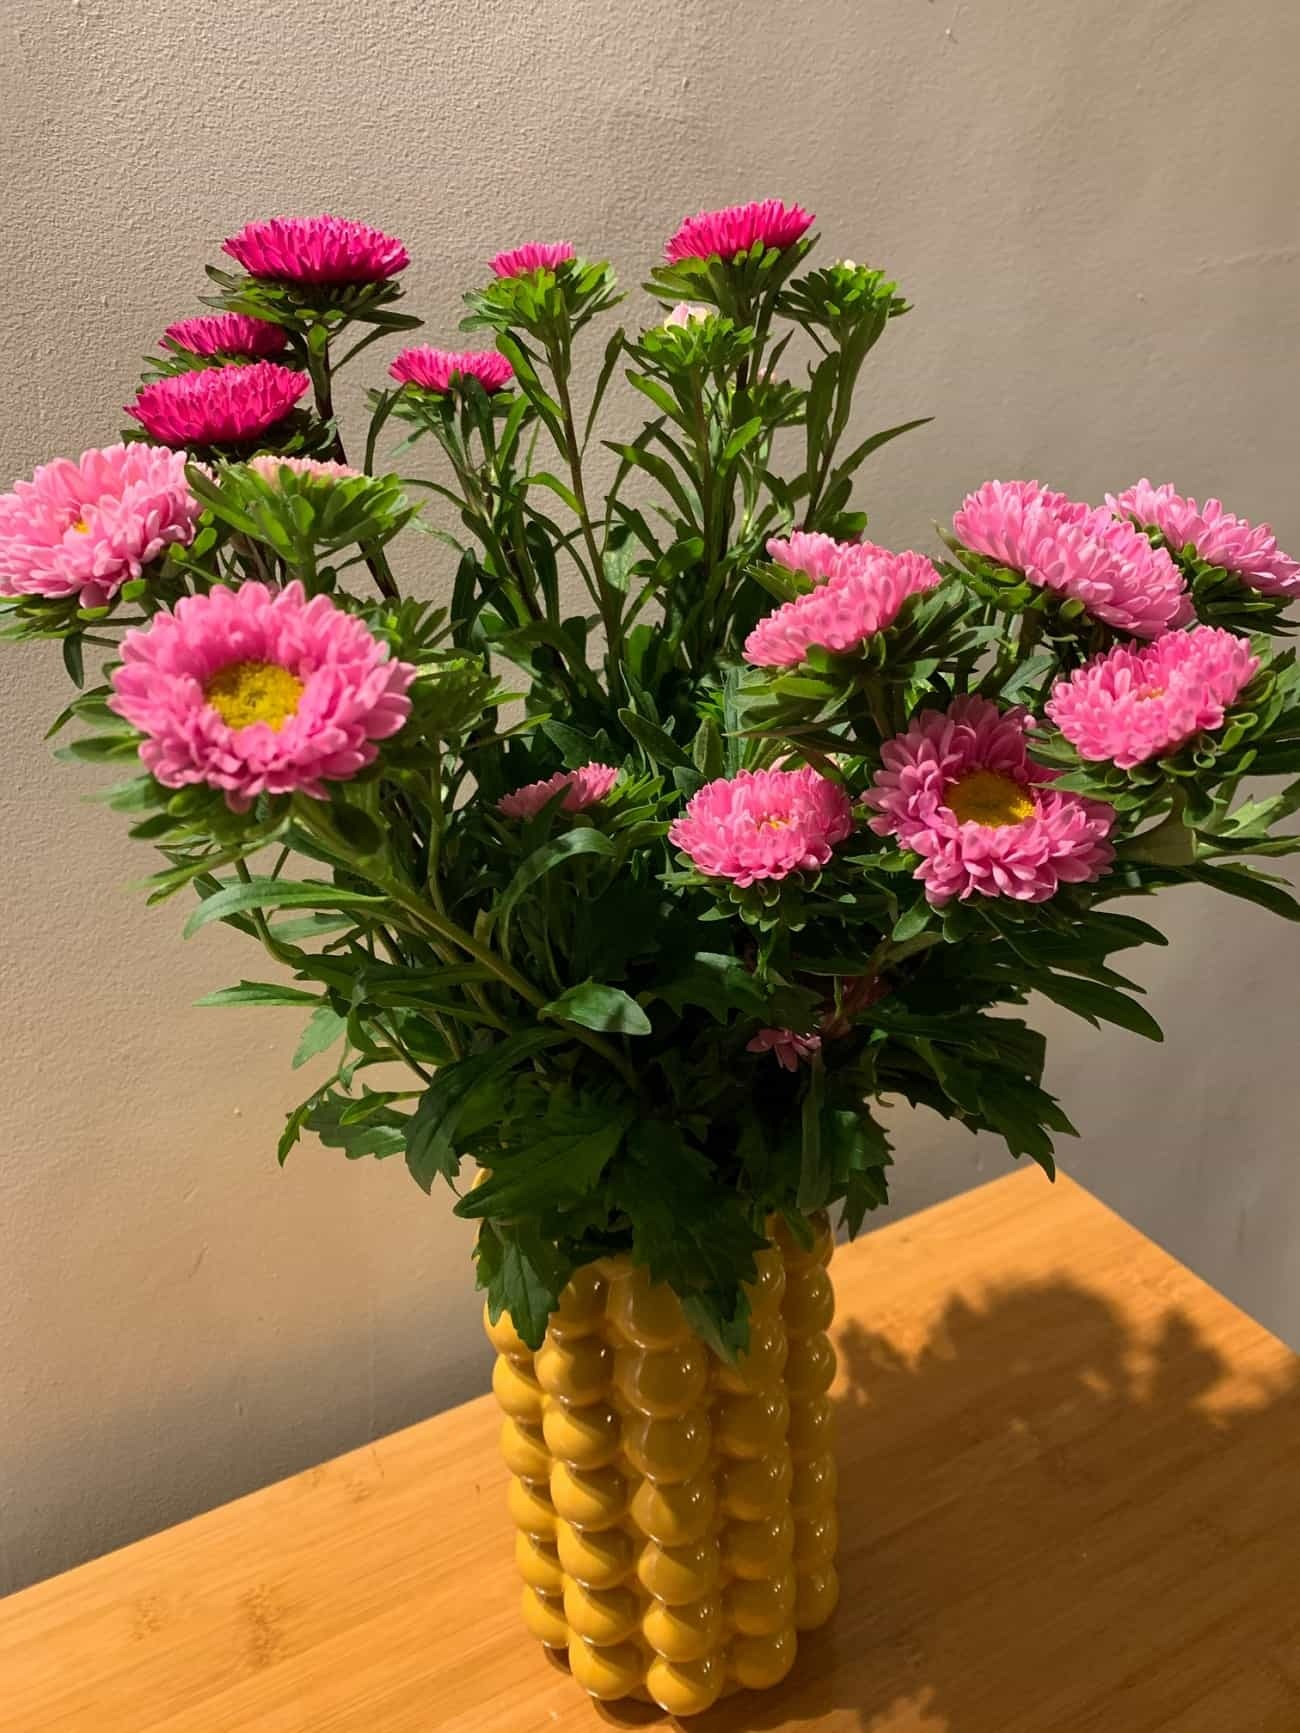 Bright flowers in a yellow vase